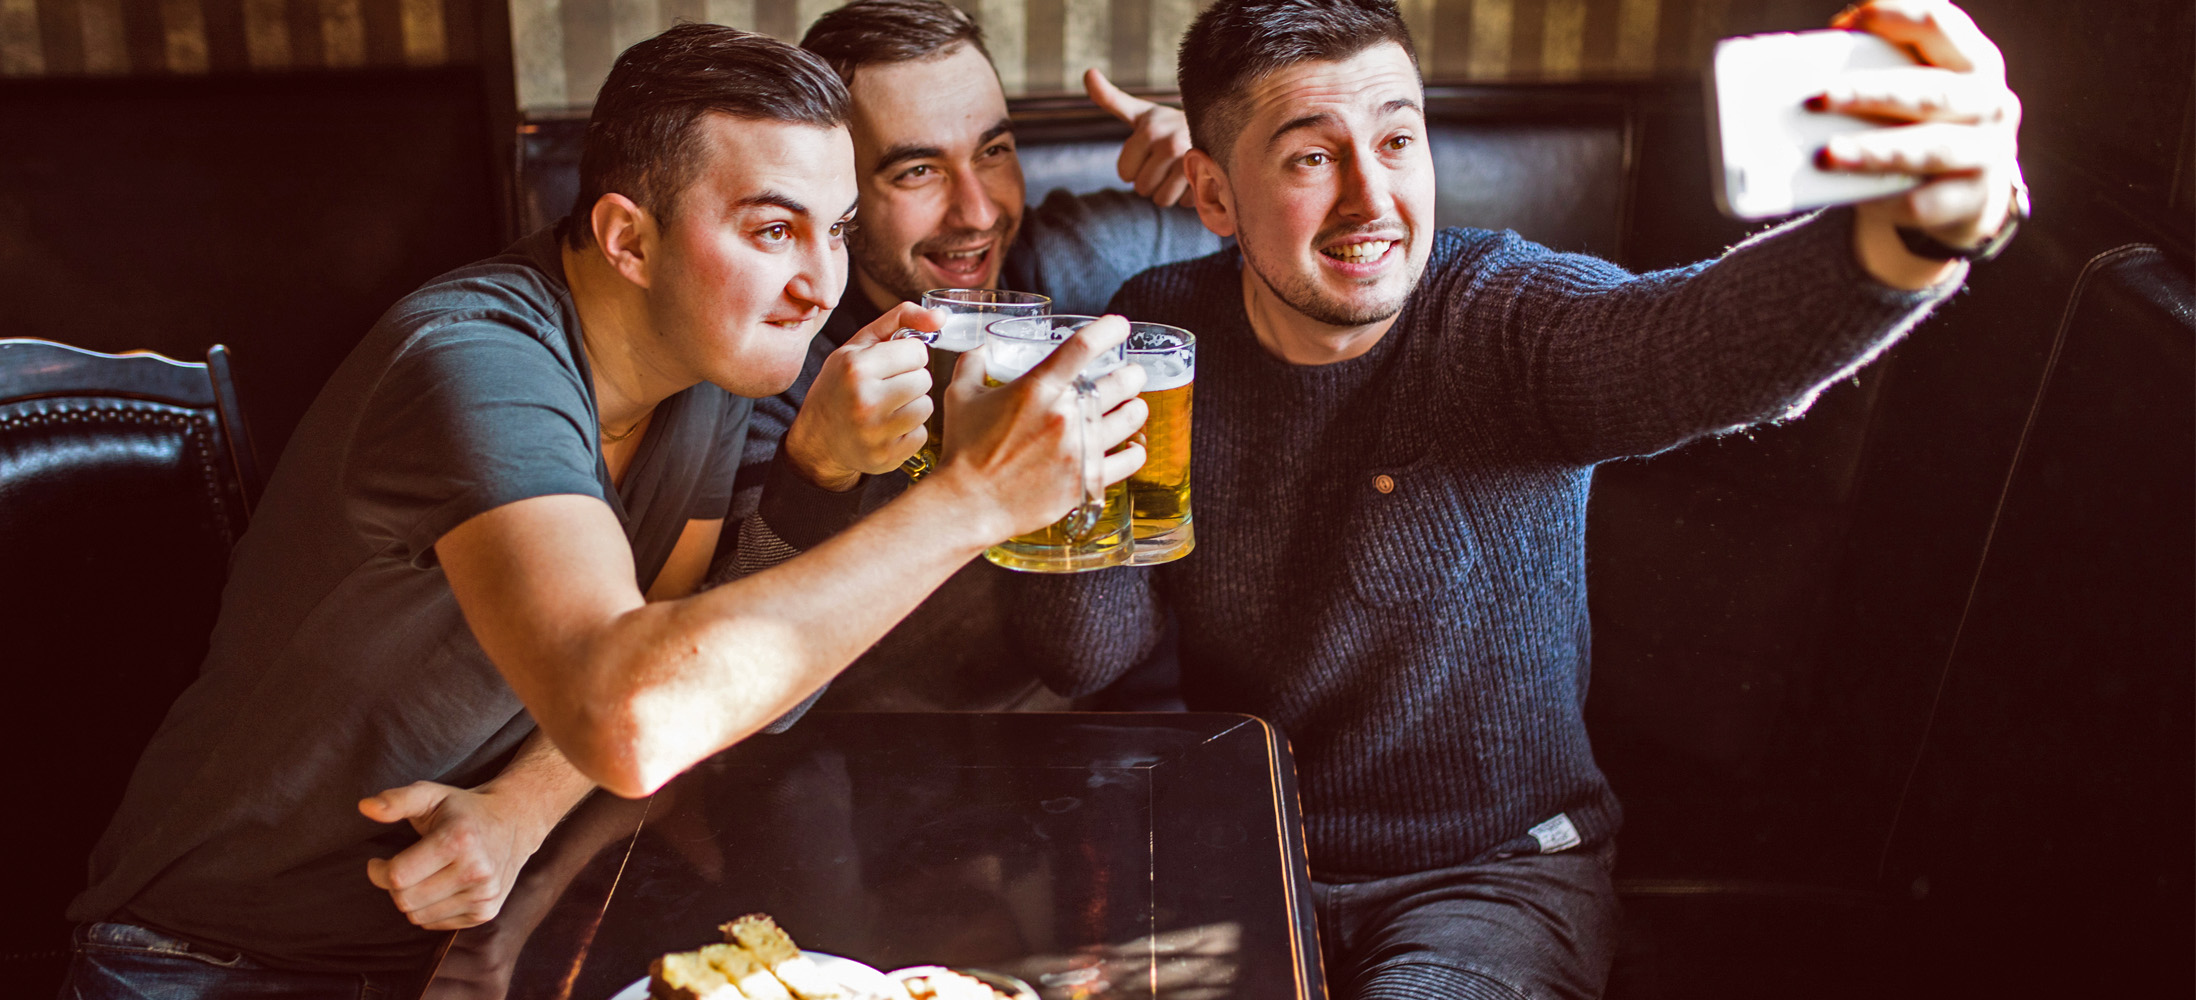 Stag Party Ideas - Top 7 - Smartphone Pub Treasure Hunt